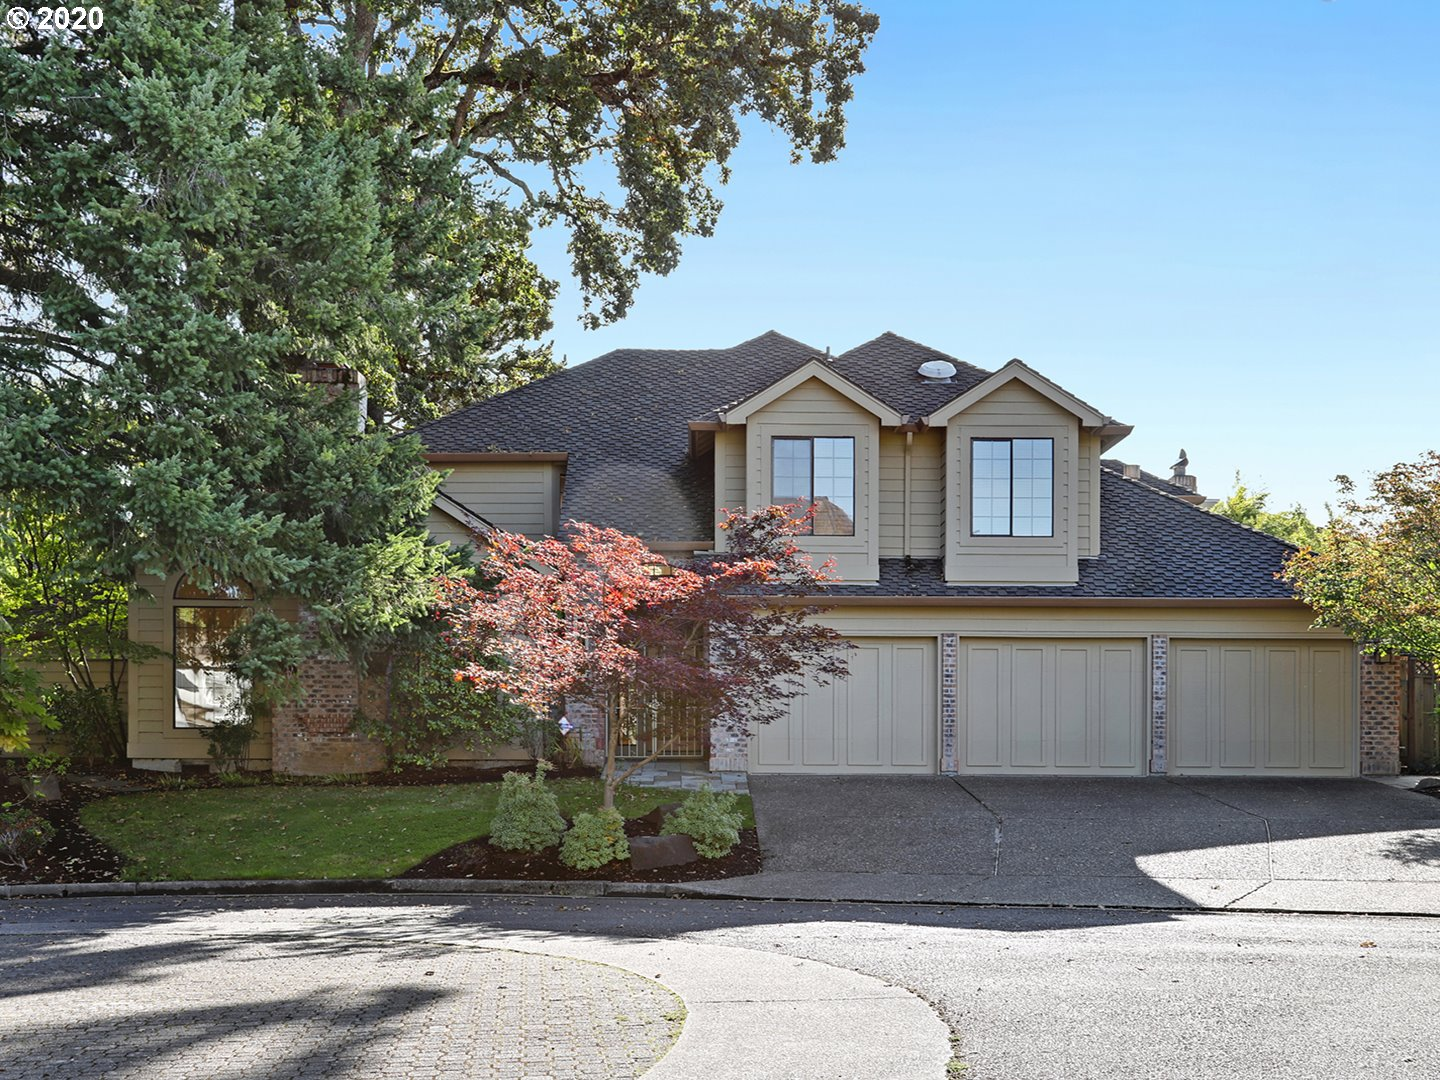 Photo of 818 NW DAVID CT, Beaverton, OR 97006